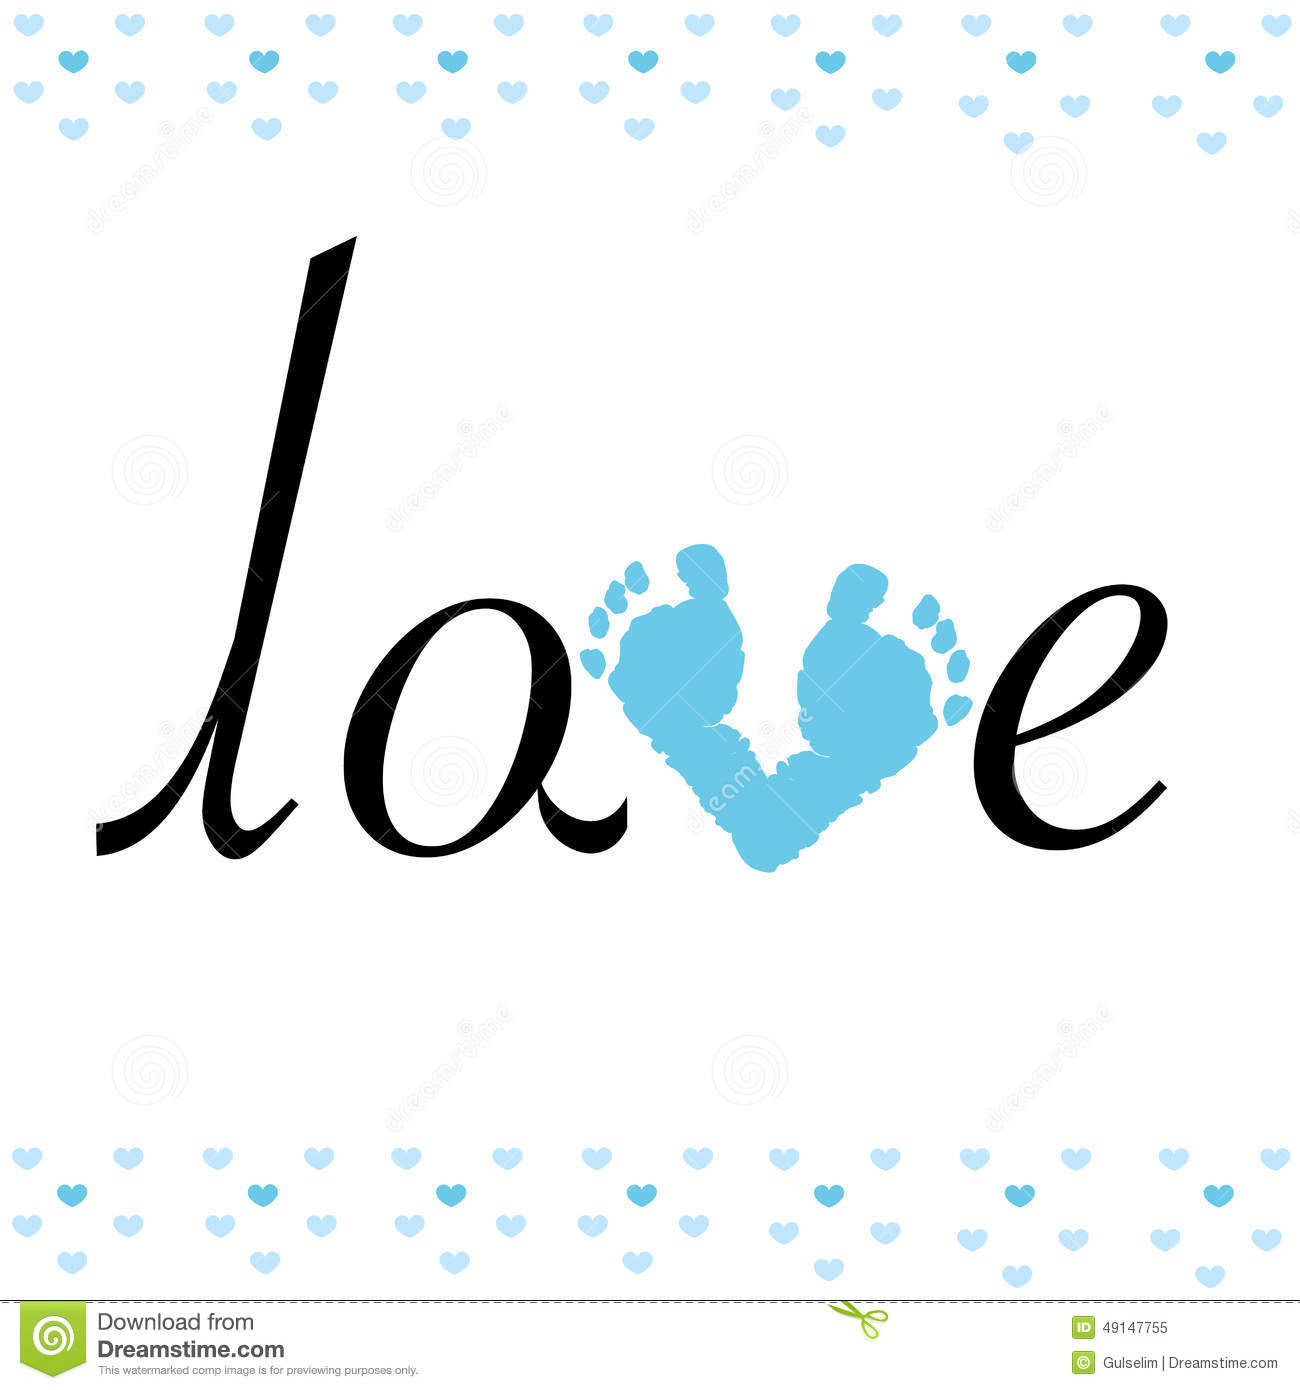 Love feet clipart jpg clipart free library Baby Boy Blue Feet Clip Art Stock Photos, Images, & Pictures - 37 ... clipart free library